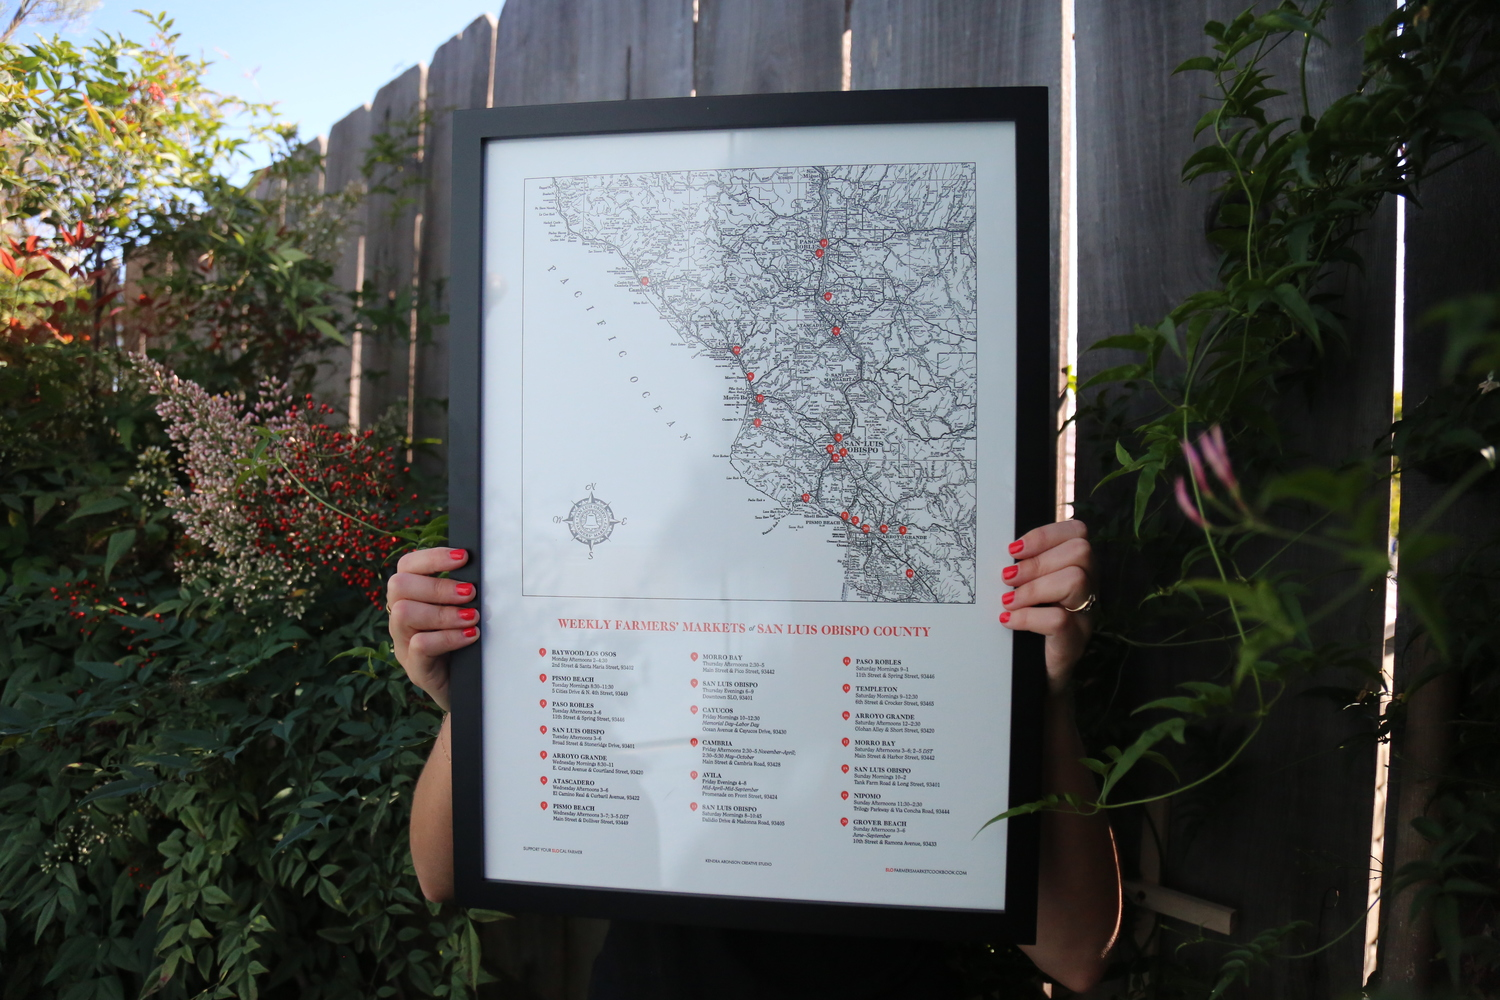 slo-farmers-market-cookbook-map-4.jpg